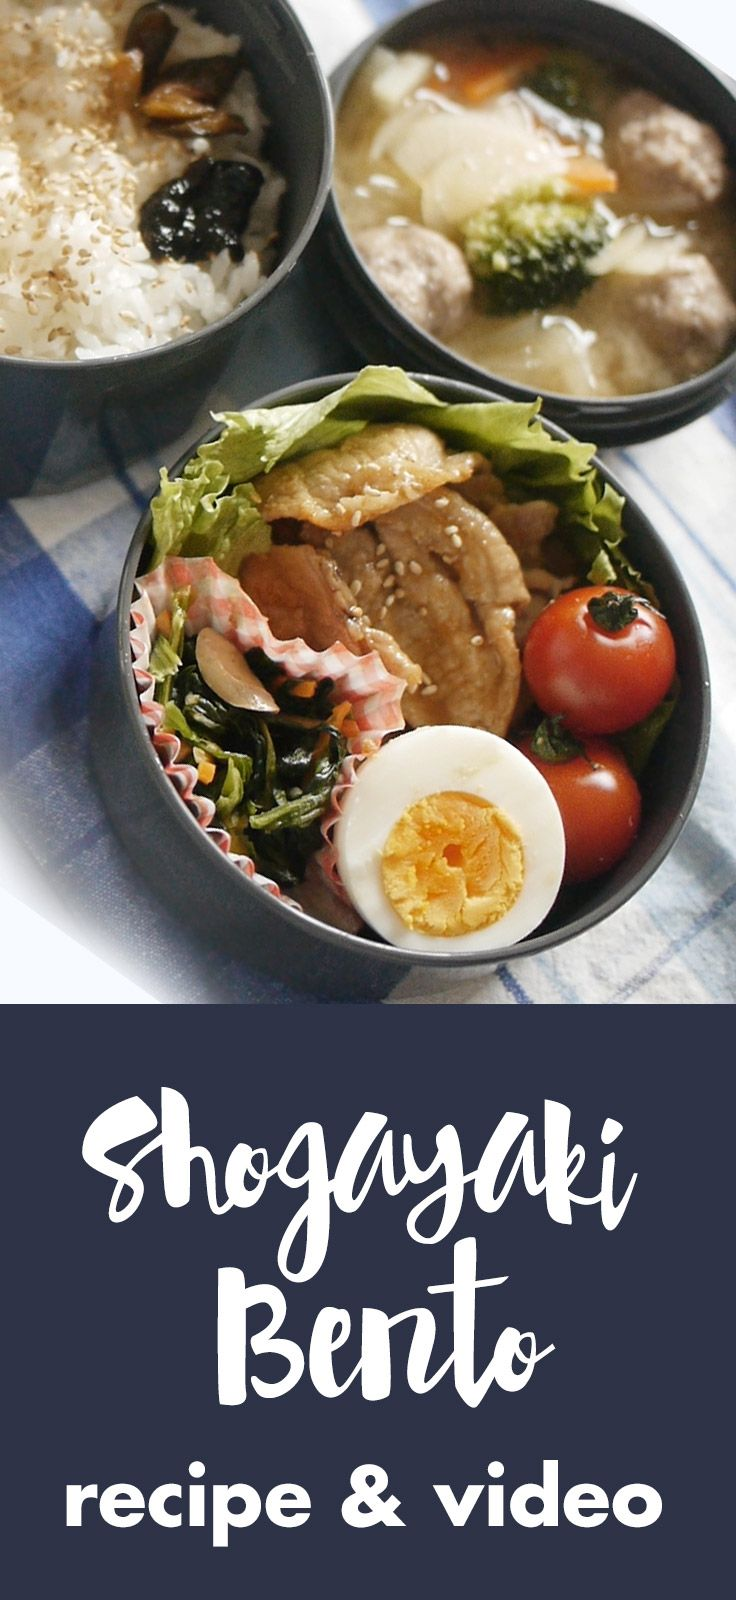 A video tutorial on how to make a Shogayaki (Ginger fried pork) bento lunchbox. visit our site for 100 quick and easy traditional japanese bento lunch box recipes and ideas for adults!  Pin now for later!